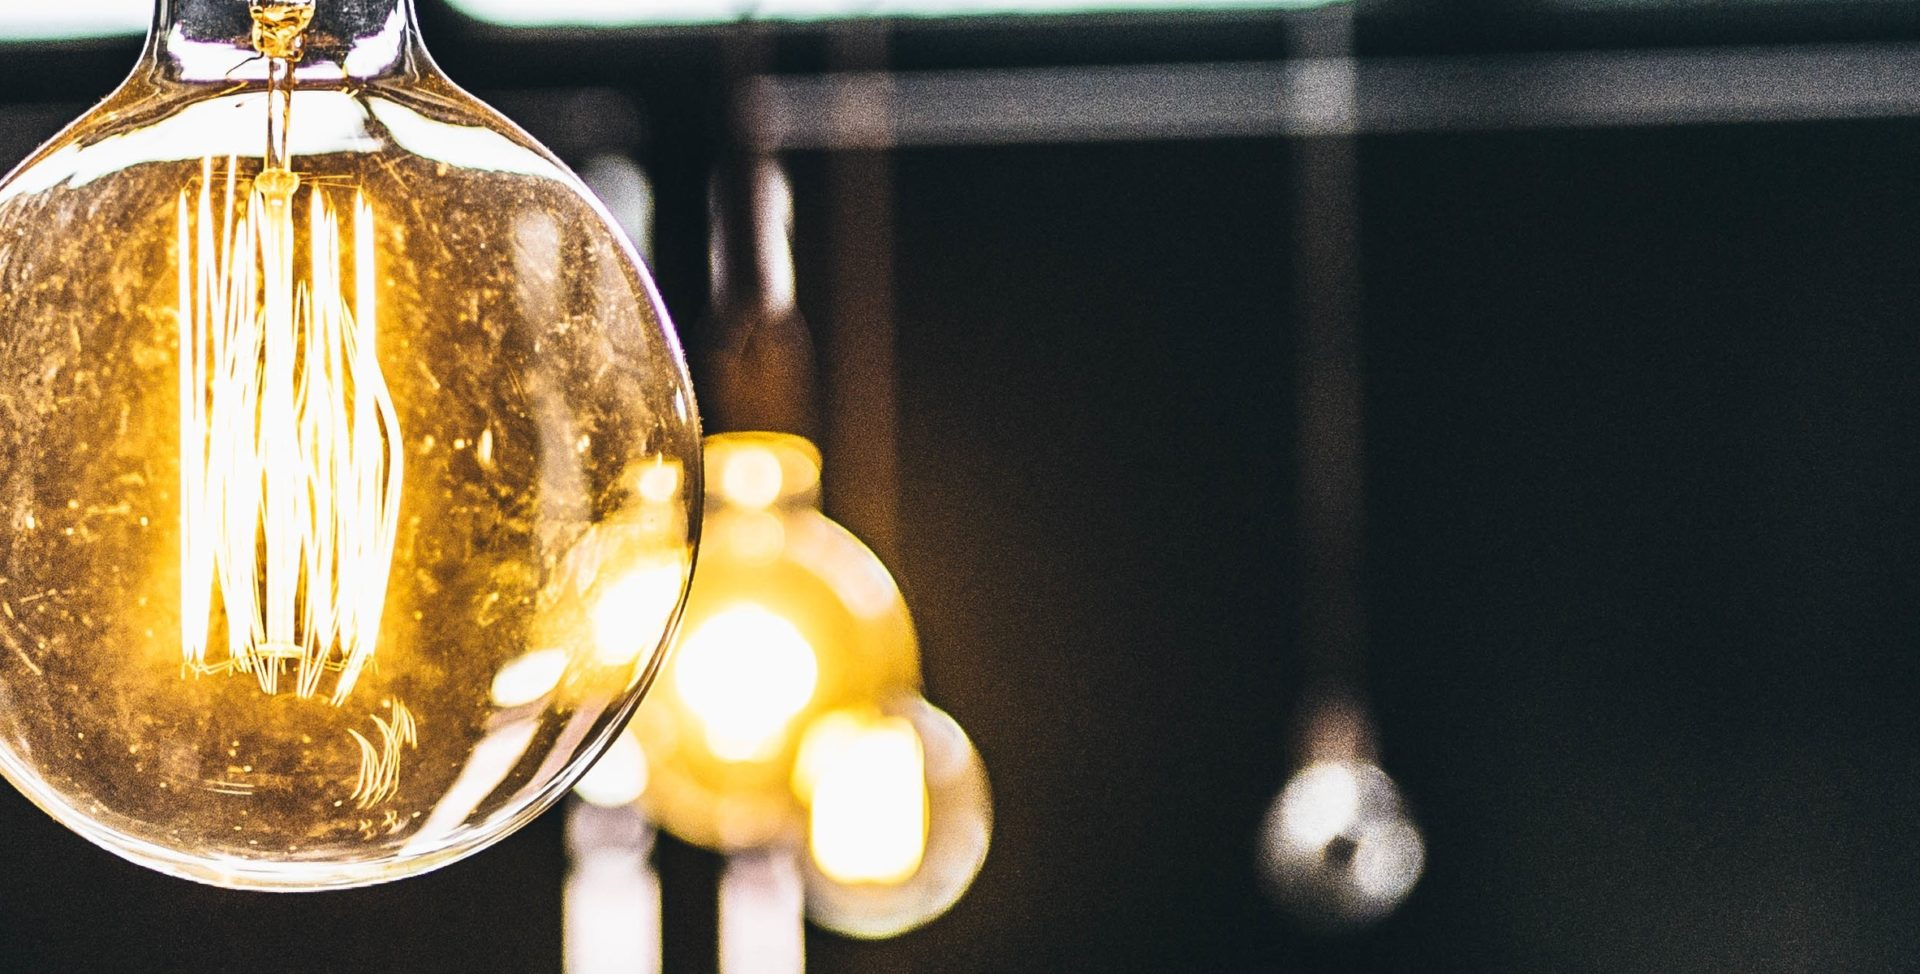 Several large round filament lightbulbs just out of focus